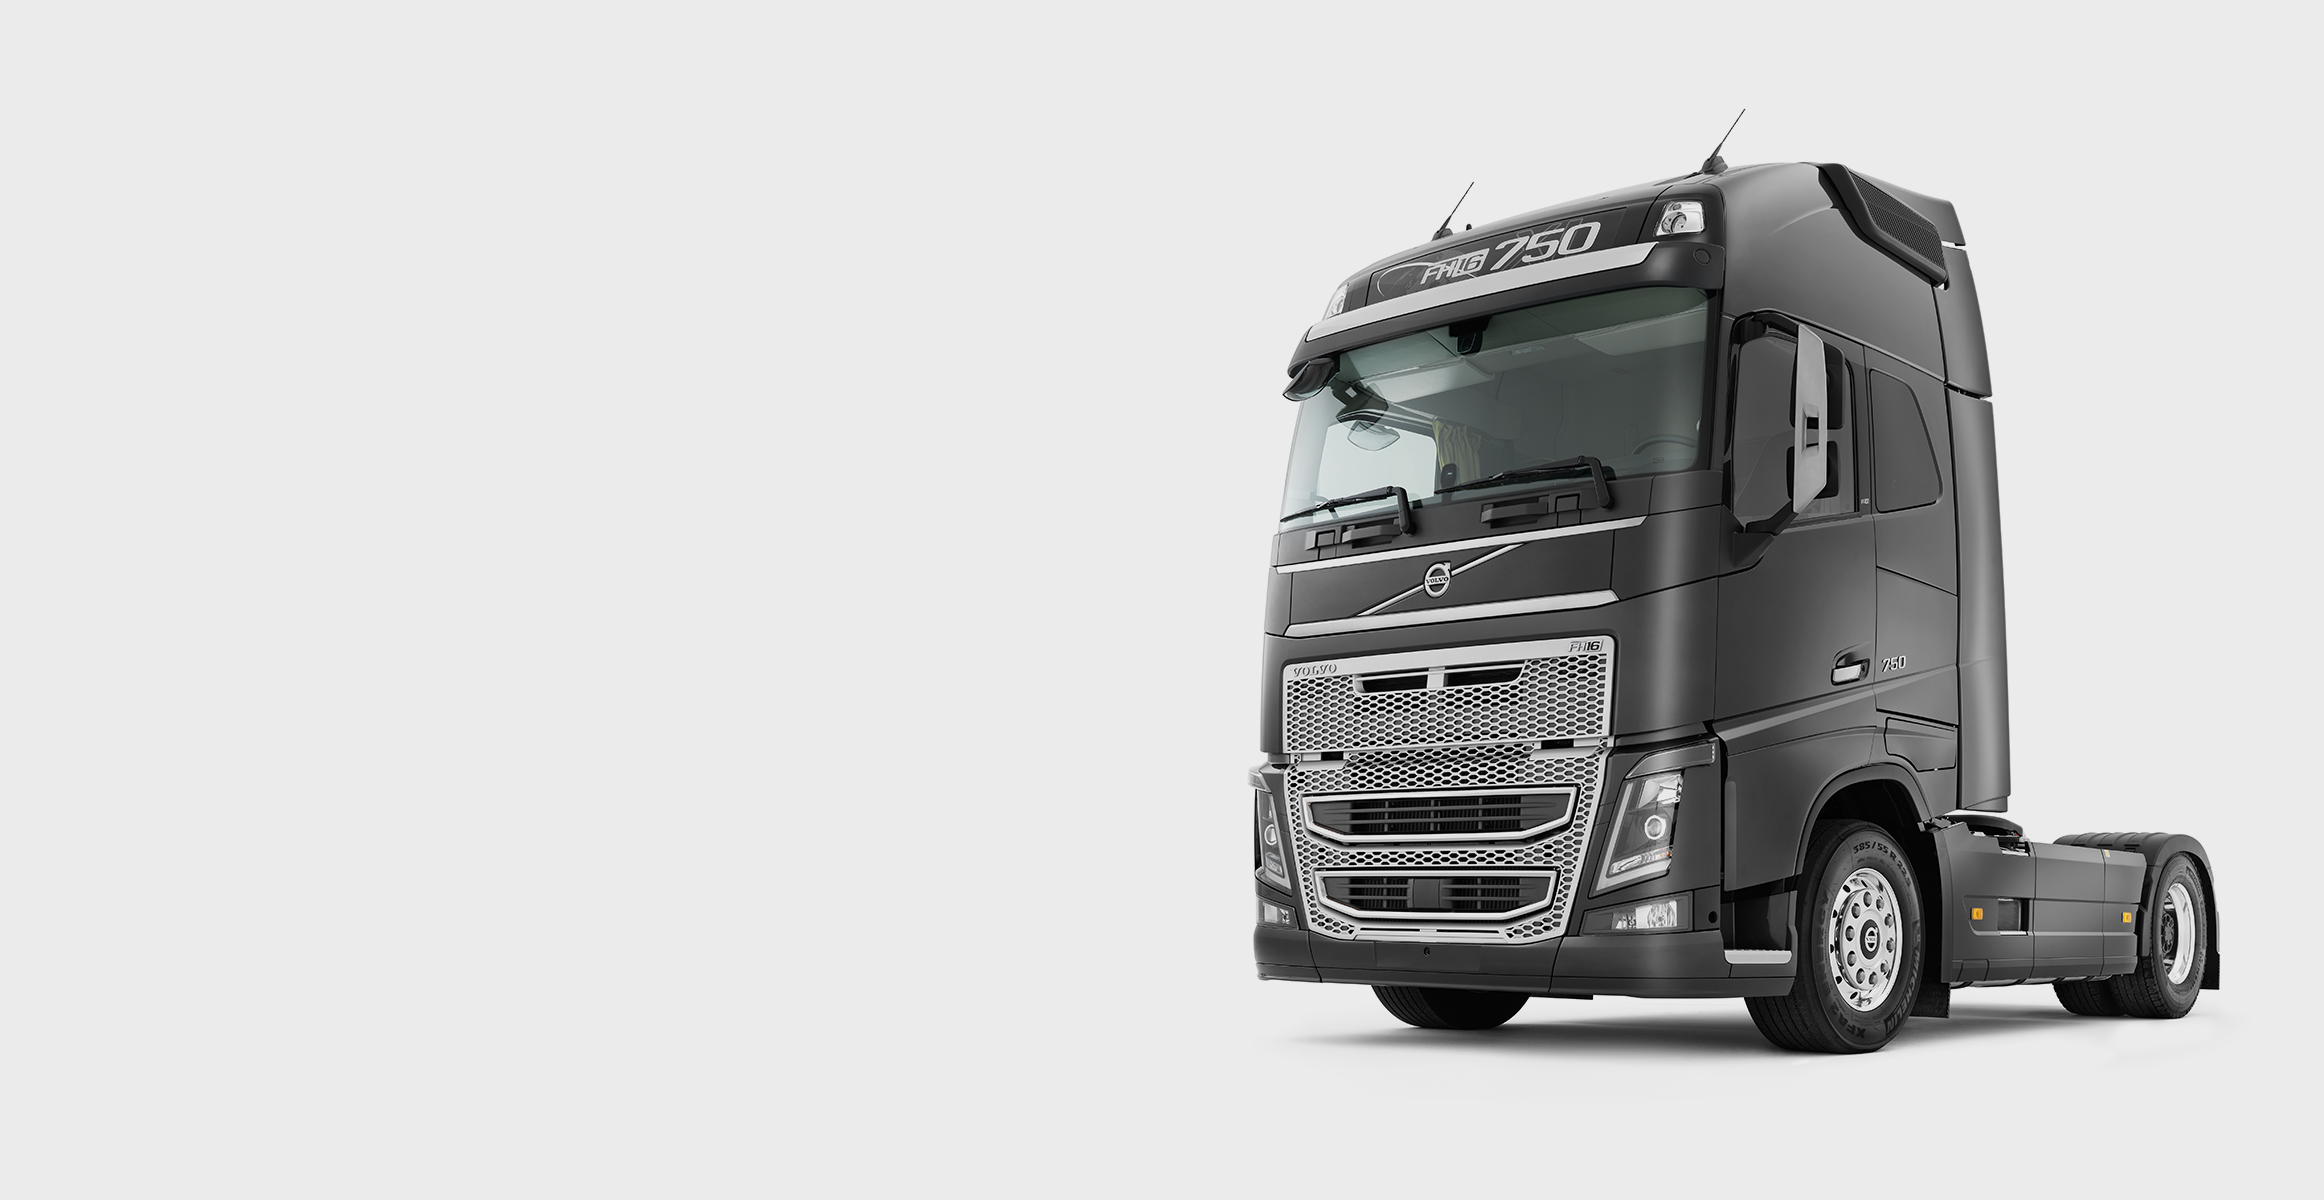 Volvo fh photo - 7